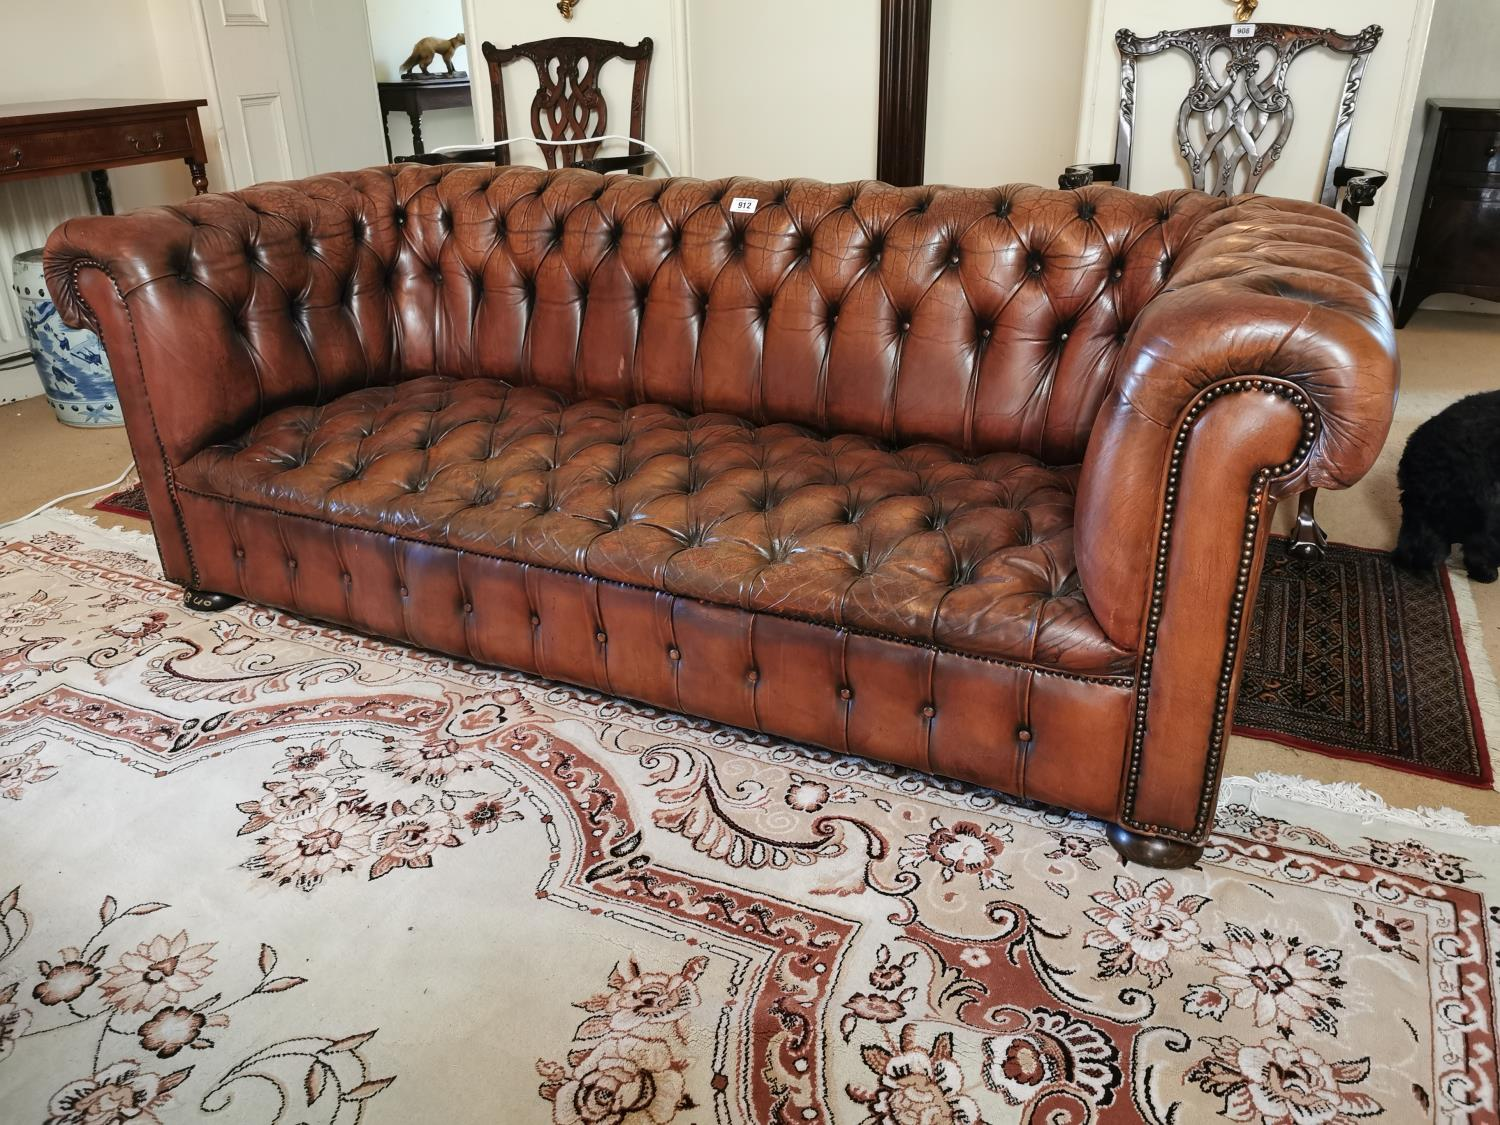 Hand dyed leather Chesterfield sofa.